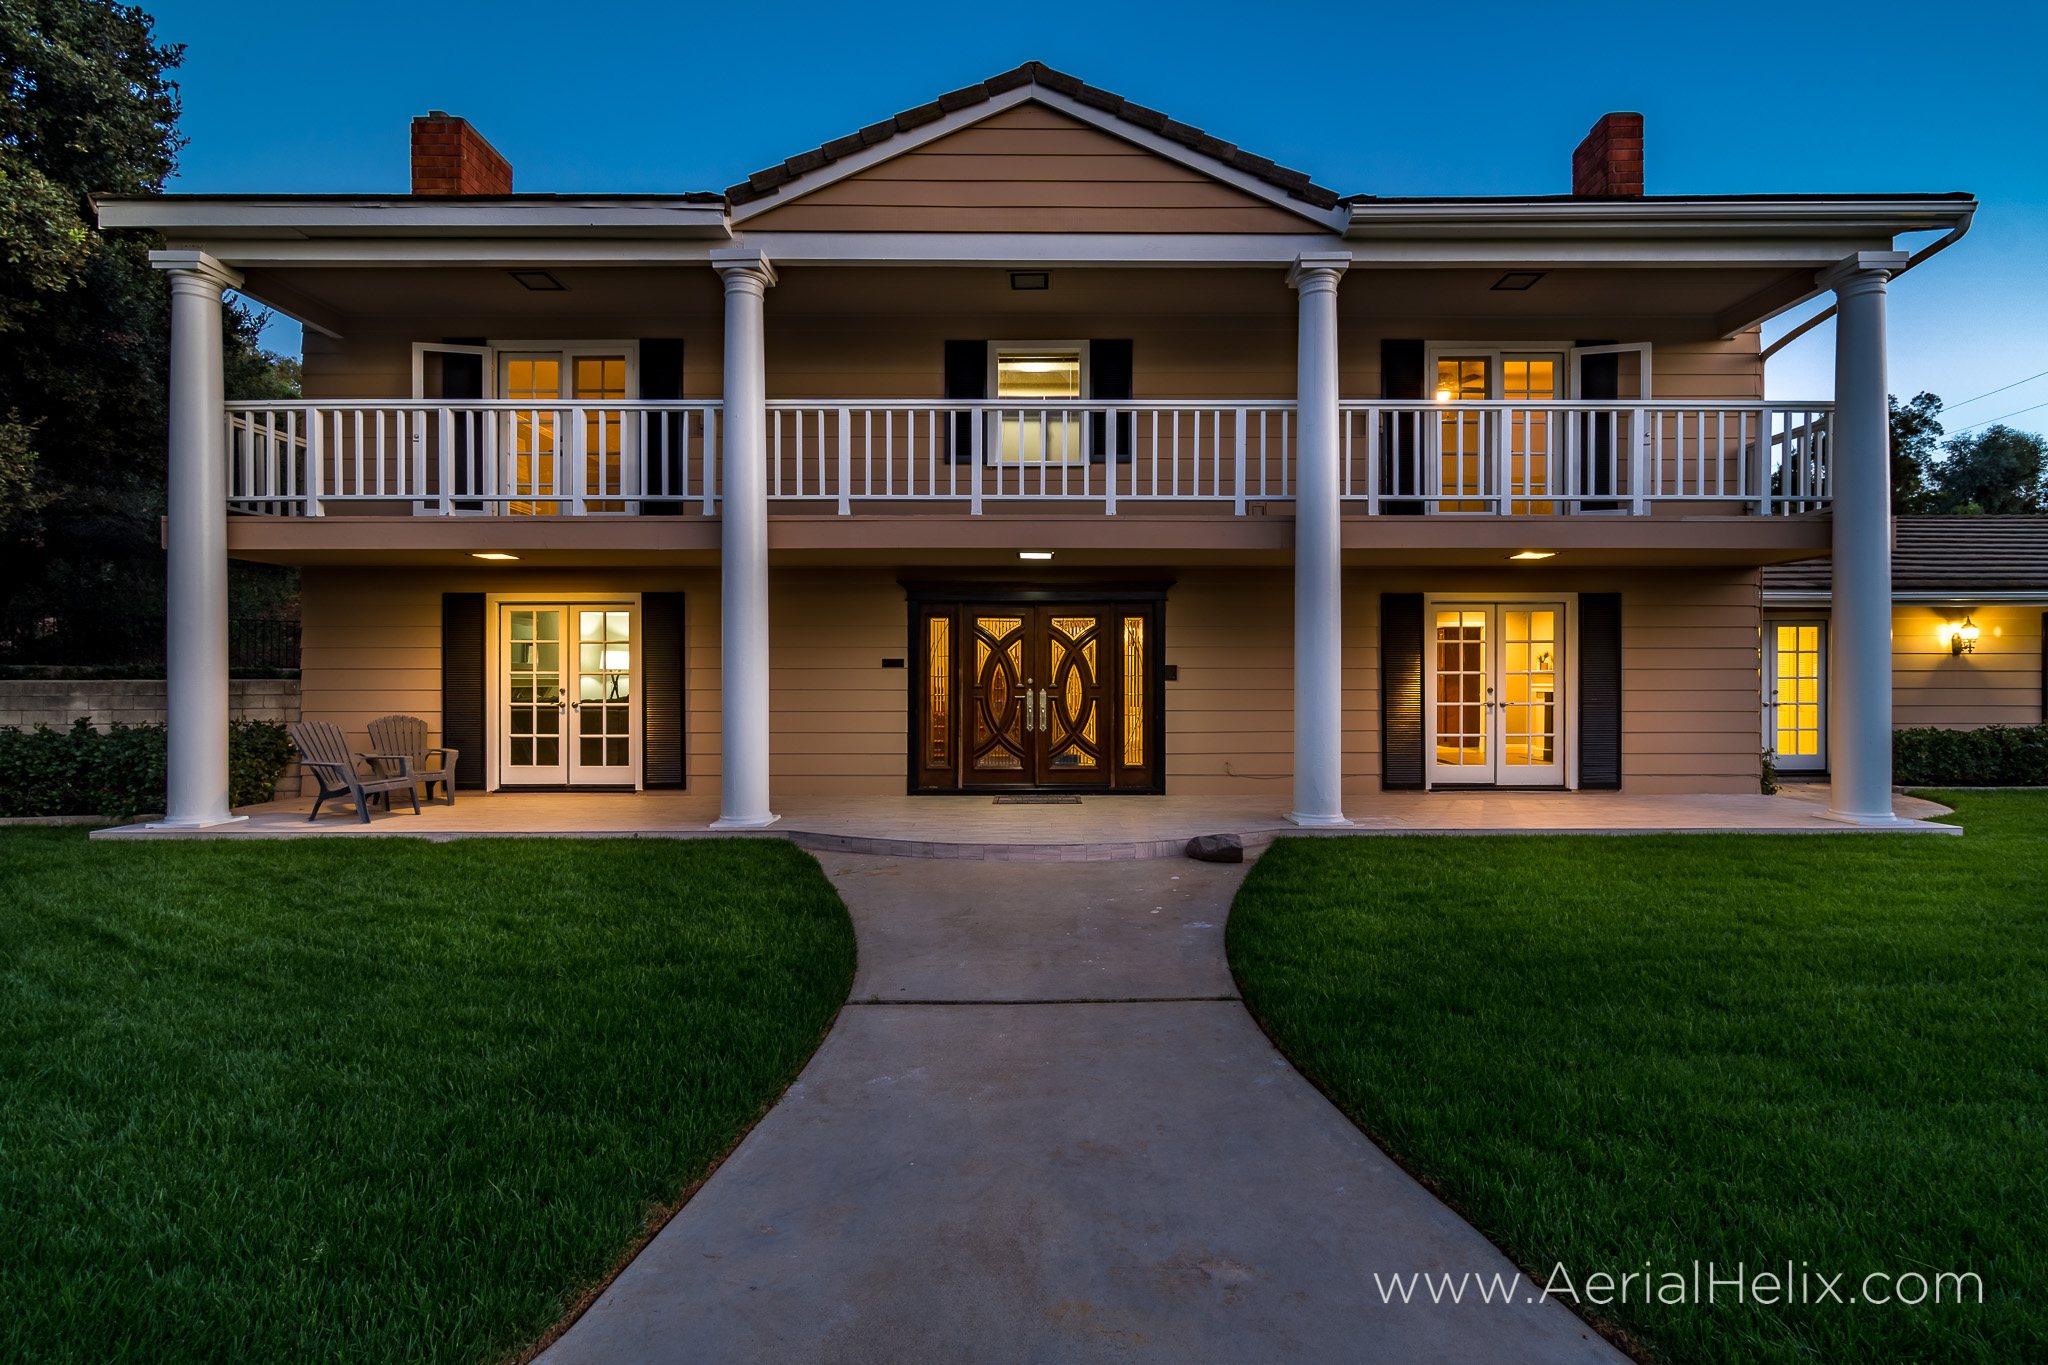 Walnut Ave Twilight - Real estate photographer-6.jpg